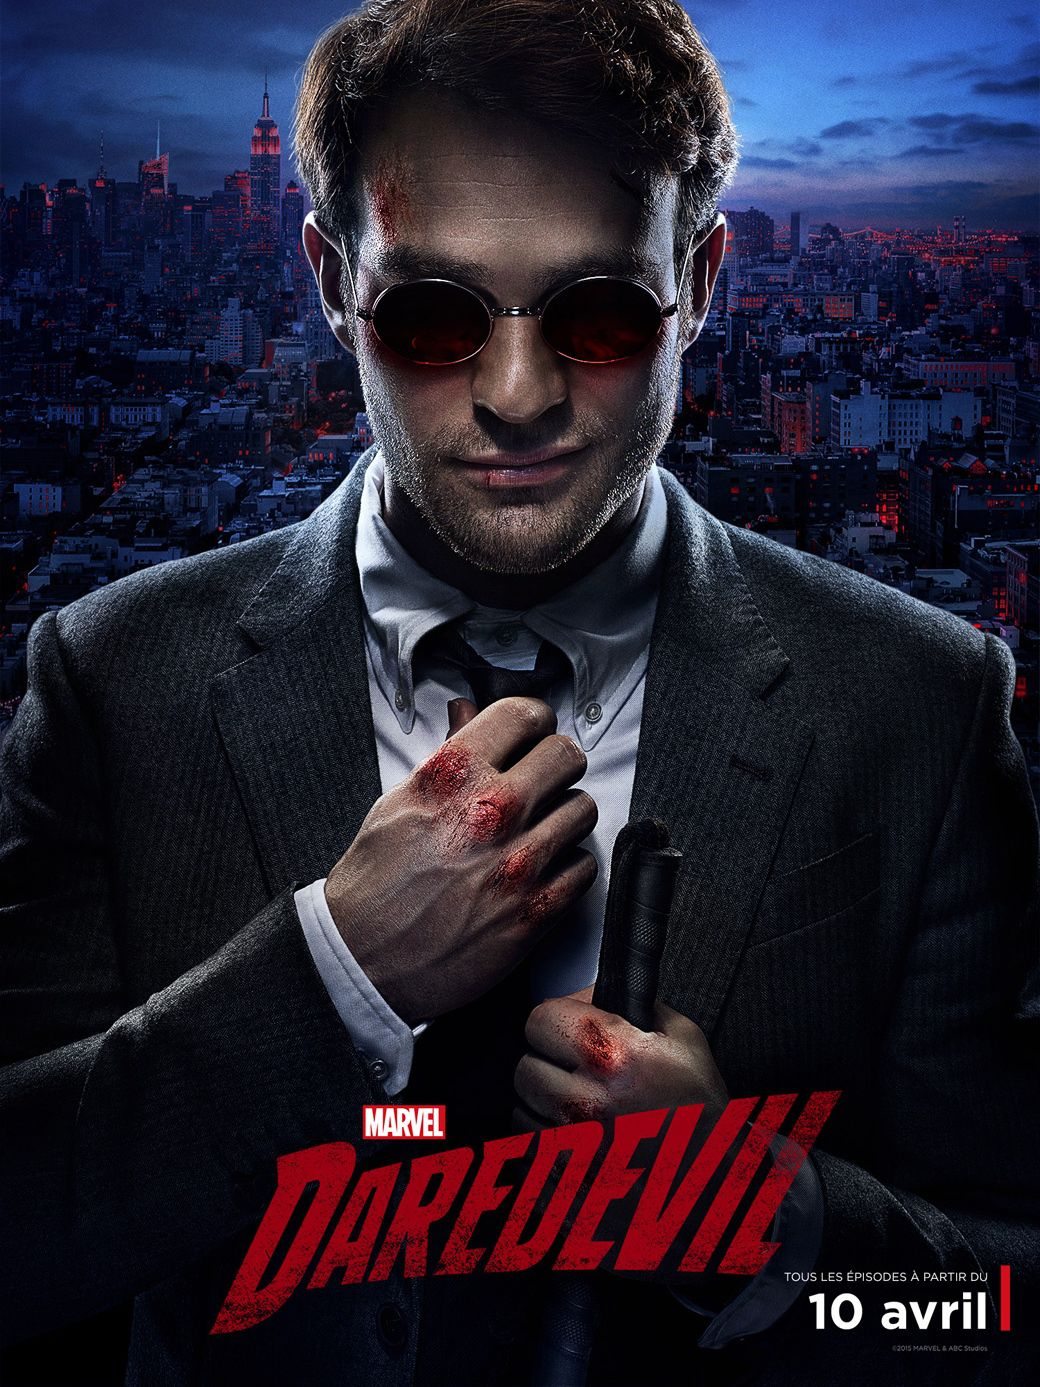 Voir Film Marvel's Daredevil - Série (2015) streaming VF gratuit complet